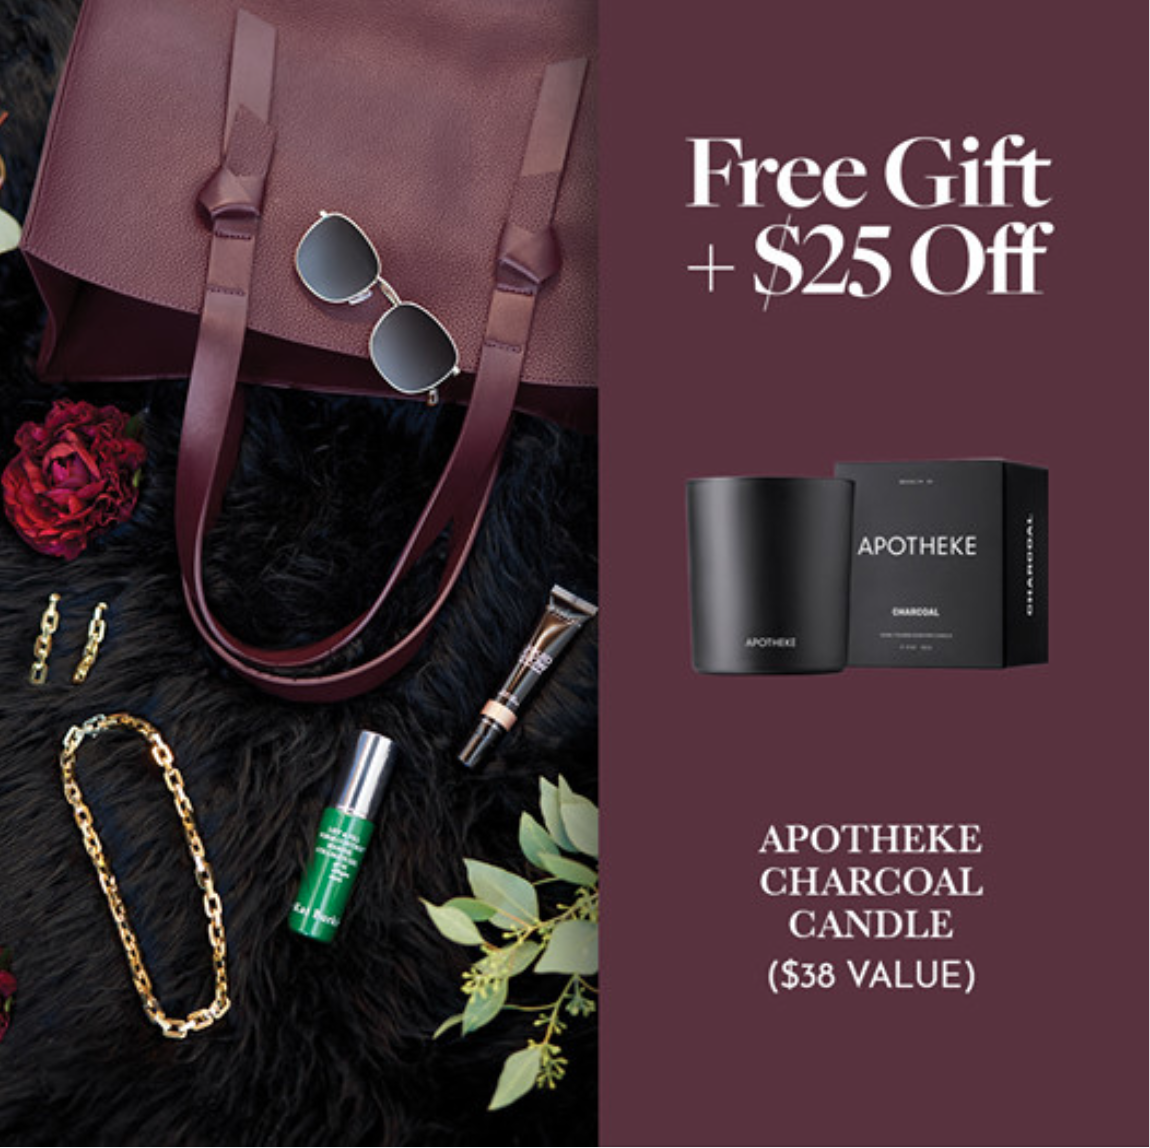 CURATEUR Fall 2020 Coupon Code – Save $25 + FREE Apotheke Charcoal Candle